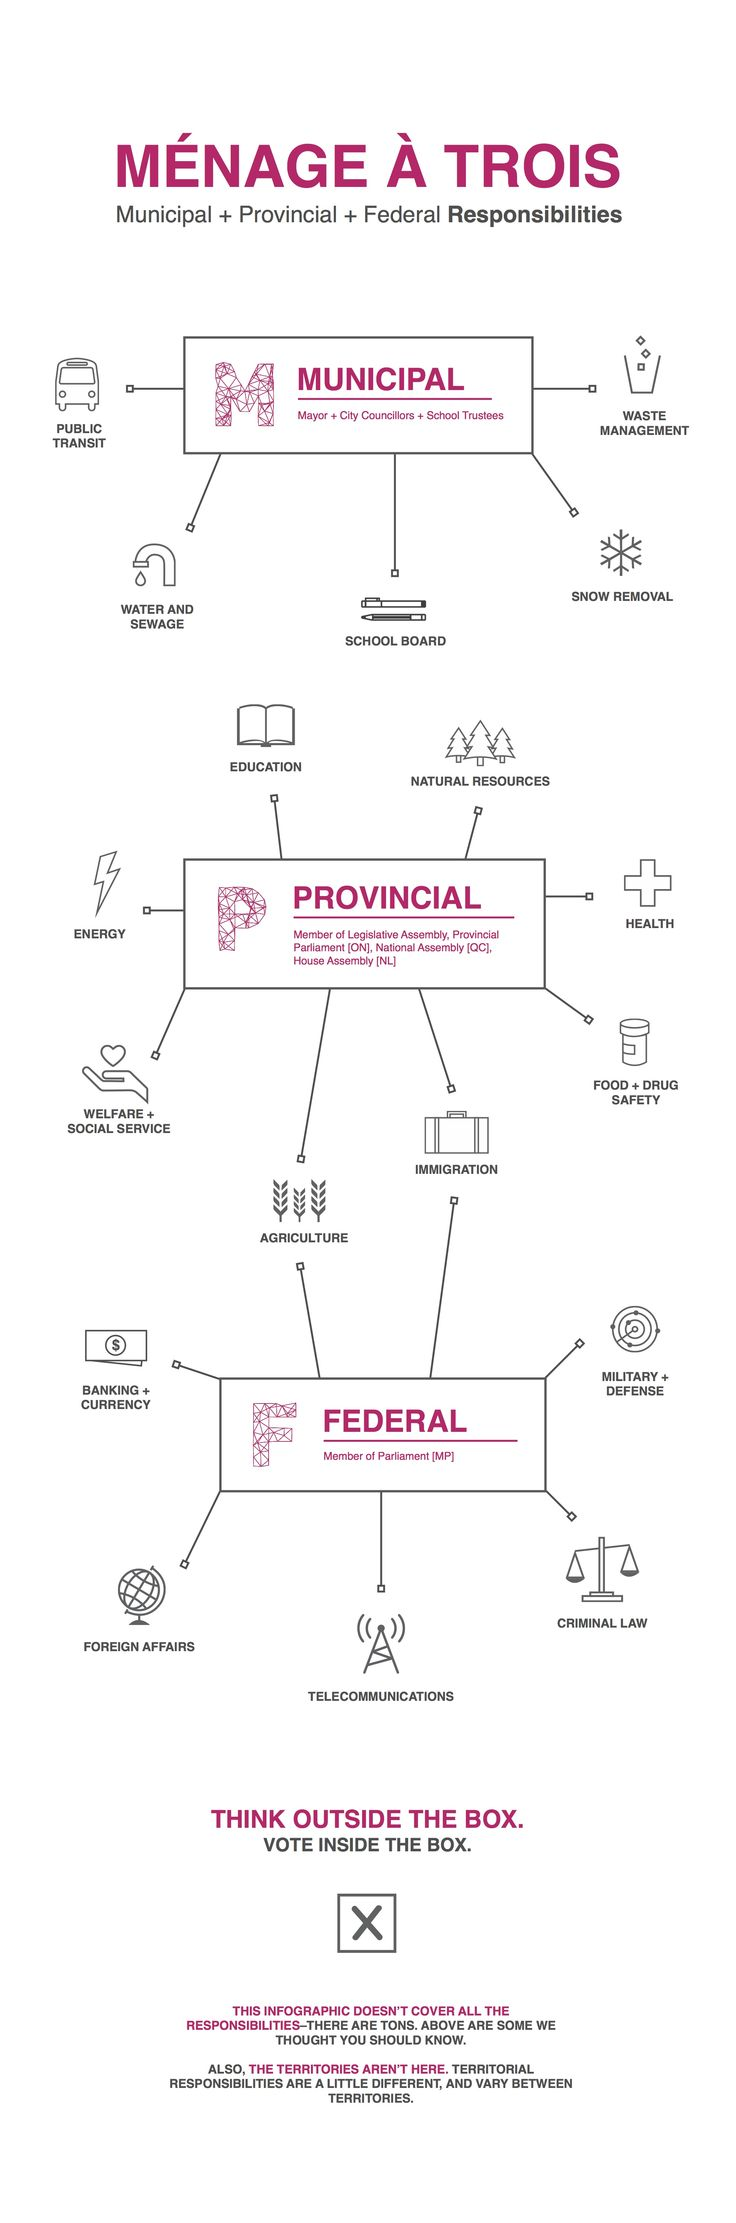 Sajdeep Soomal - Series of Infographics for Apathy is Boring about Canada's parliamentary democracy.